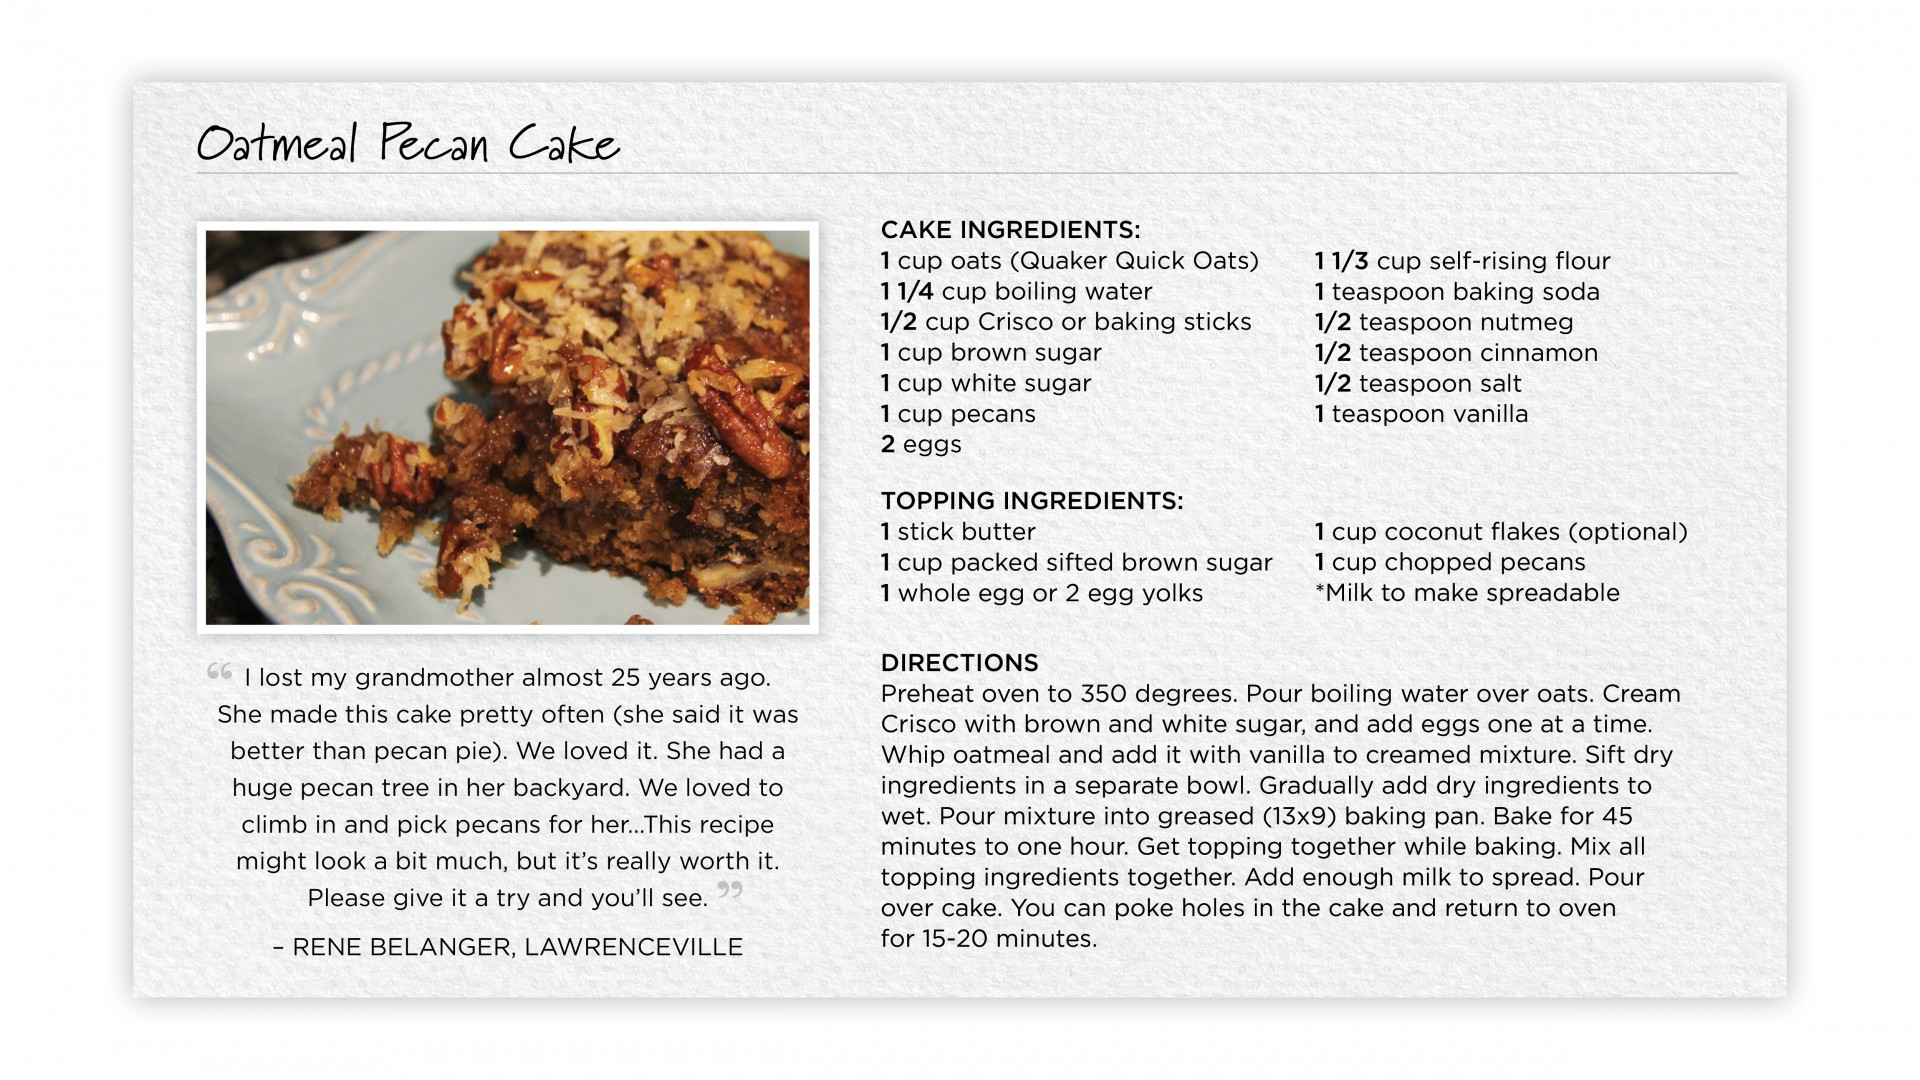 Oatmeal Pecan Cake (recipe card)